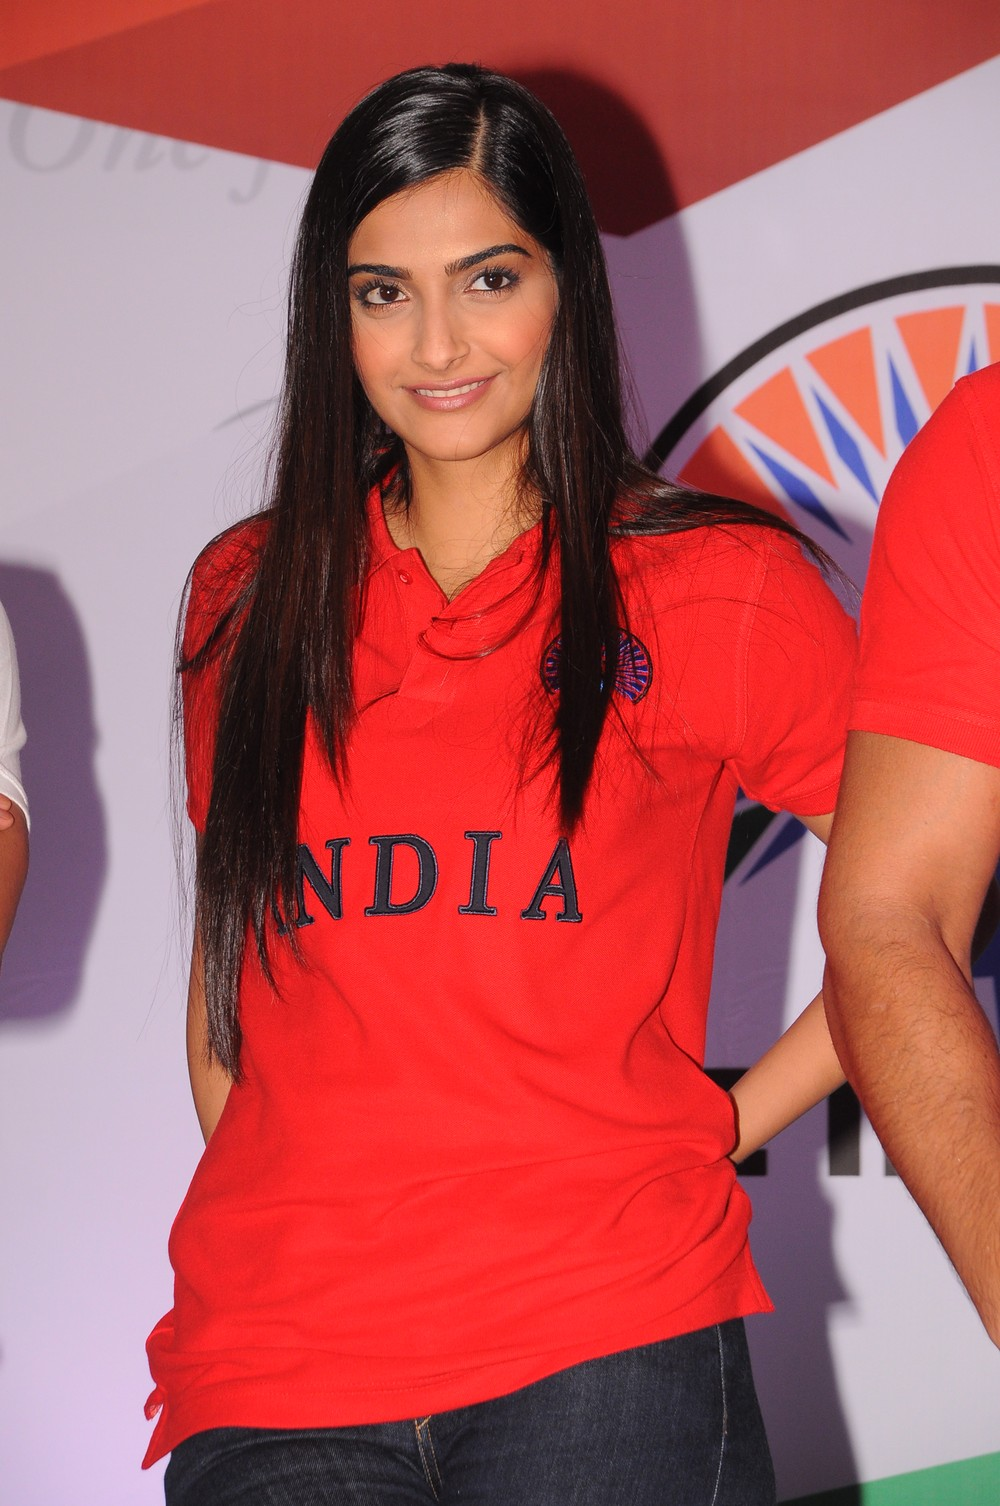 Sonam kapoor photos in red t shirt at the indian brand launch